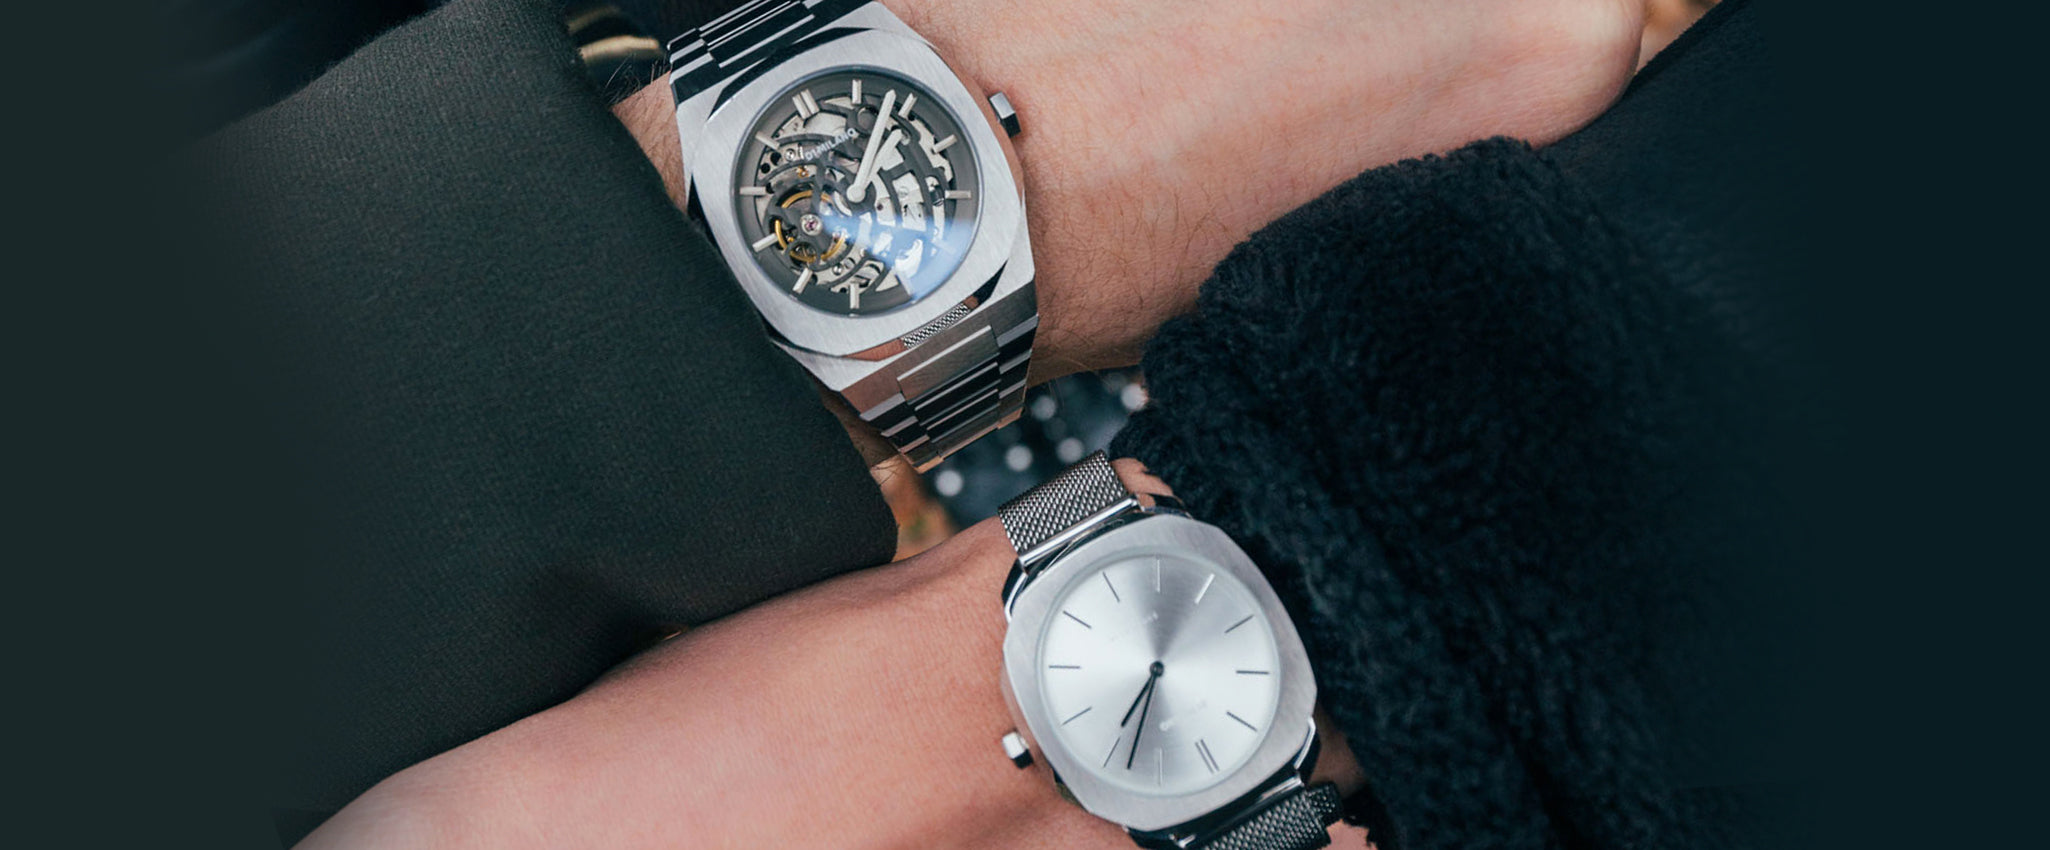 Couple watch D1 Milano